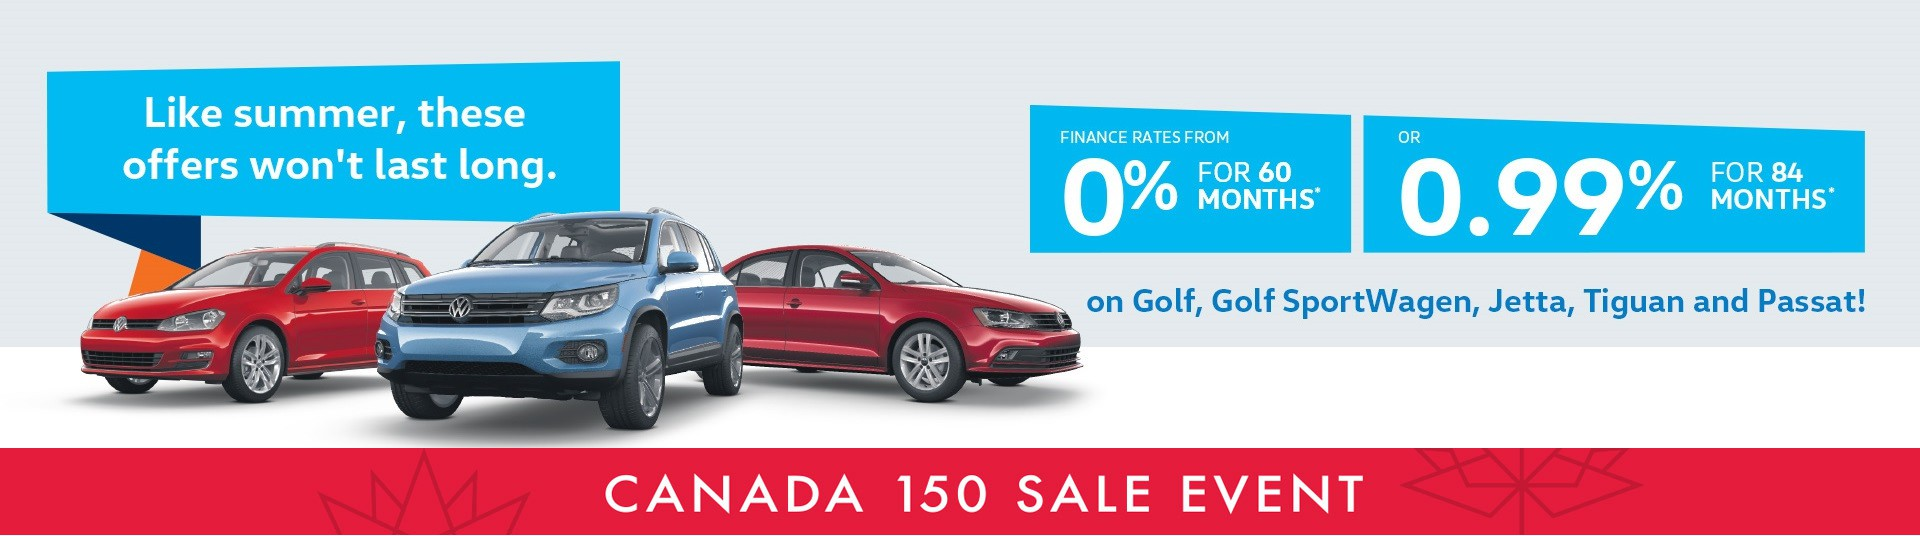 All New Used Vehicles For Sale In Toronto Humberview